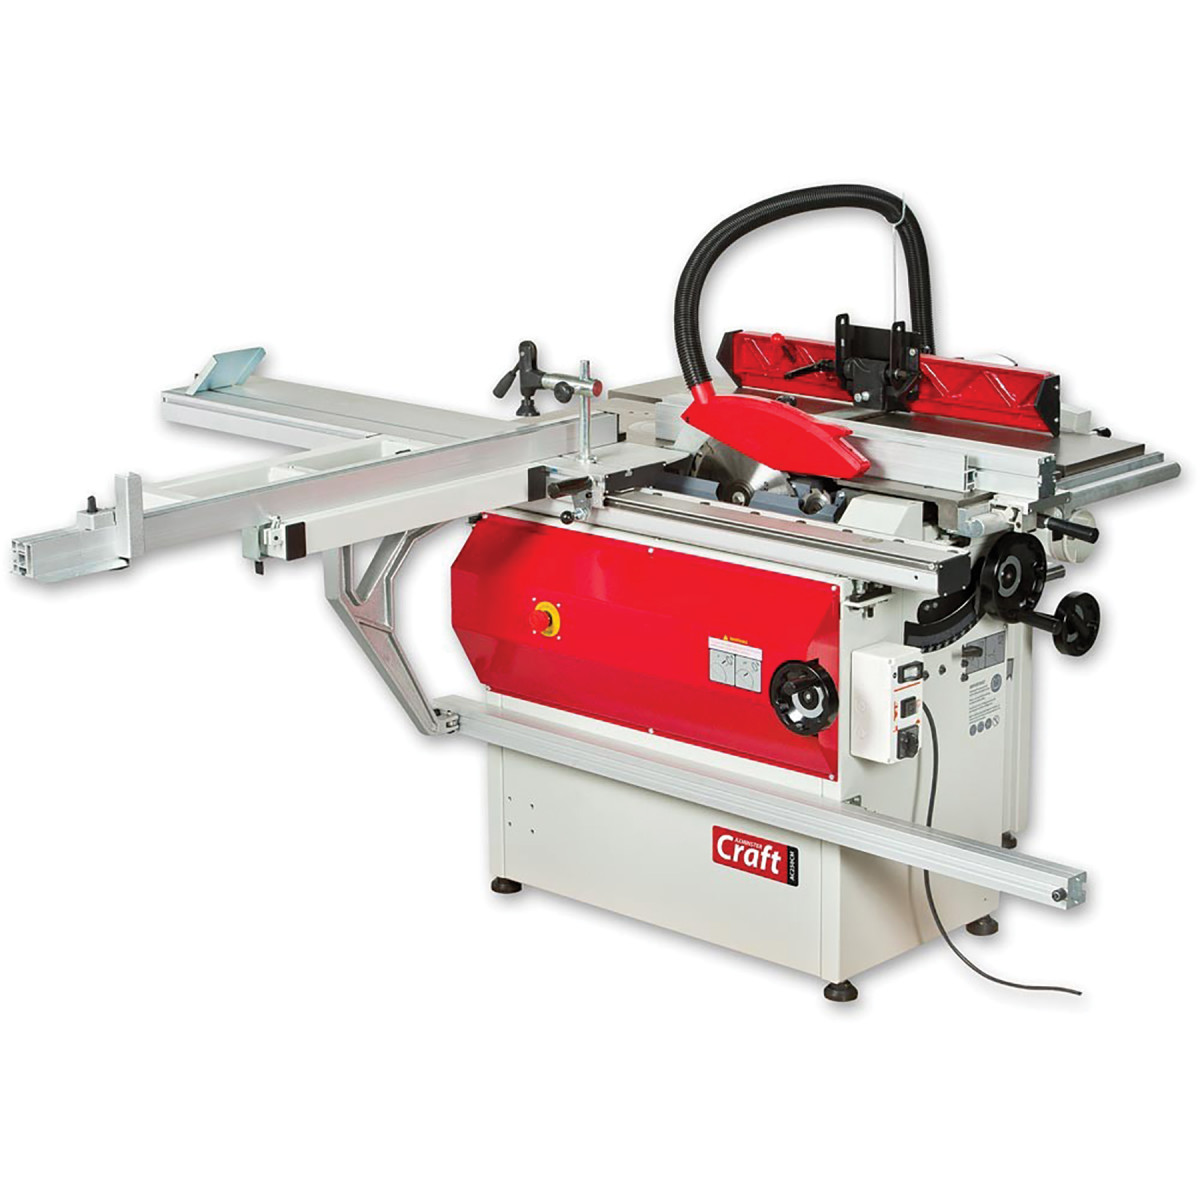 AC250CM four-function machine available from Axminster Tools & Machinery.